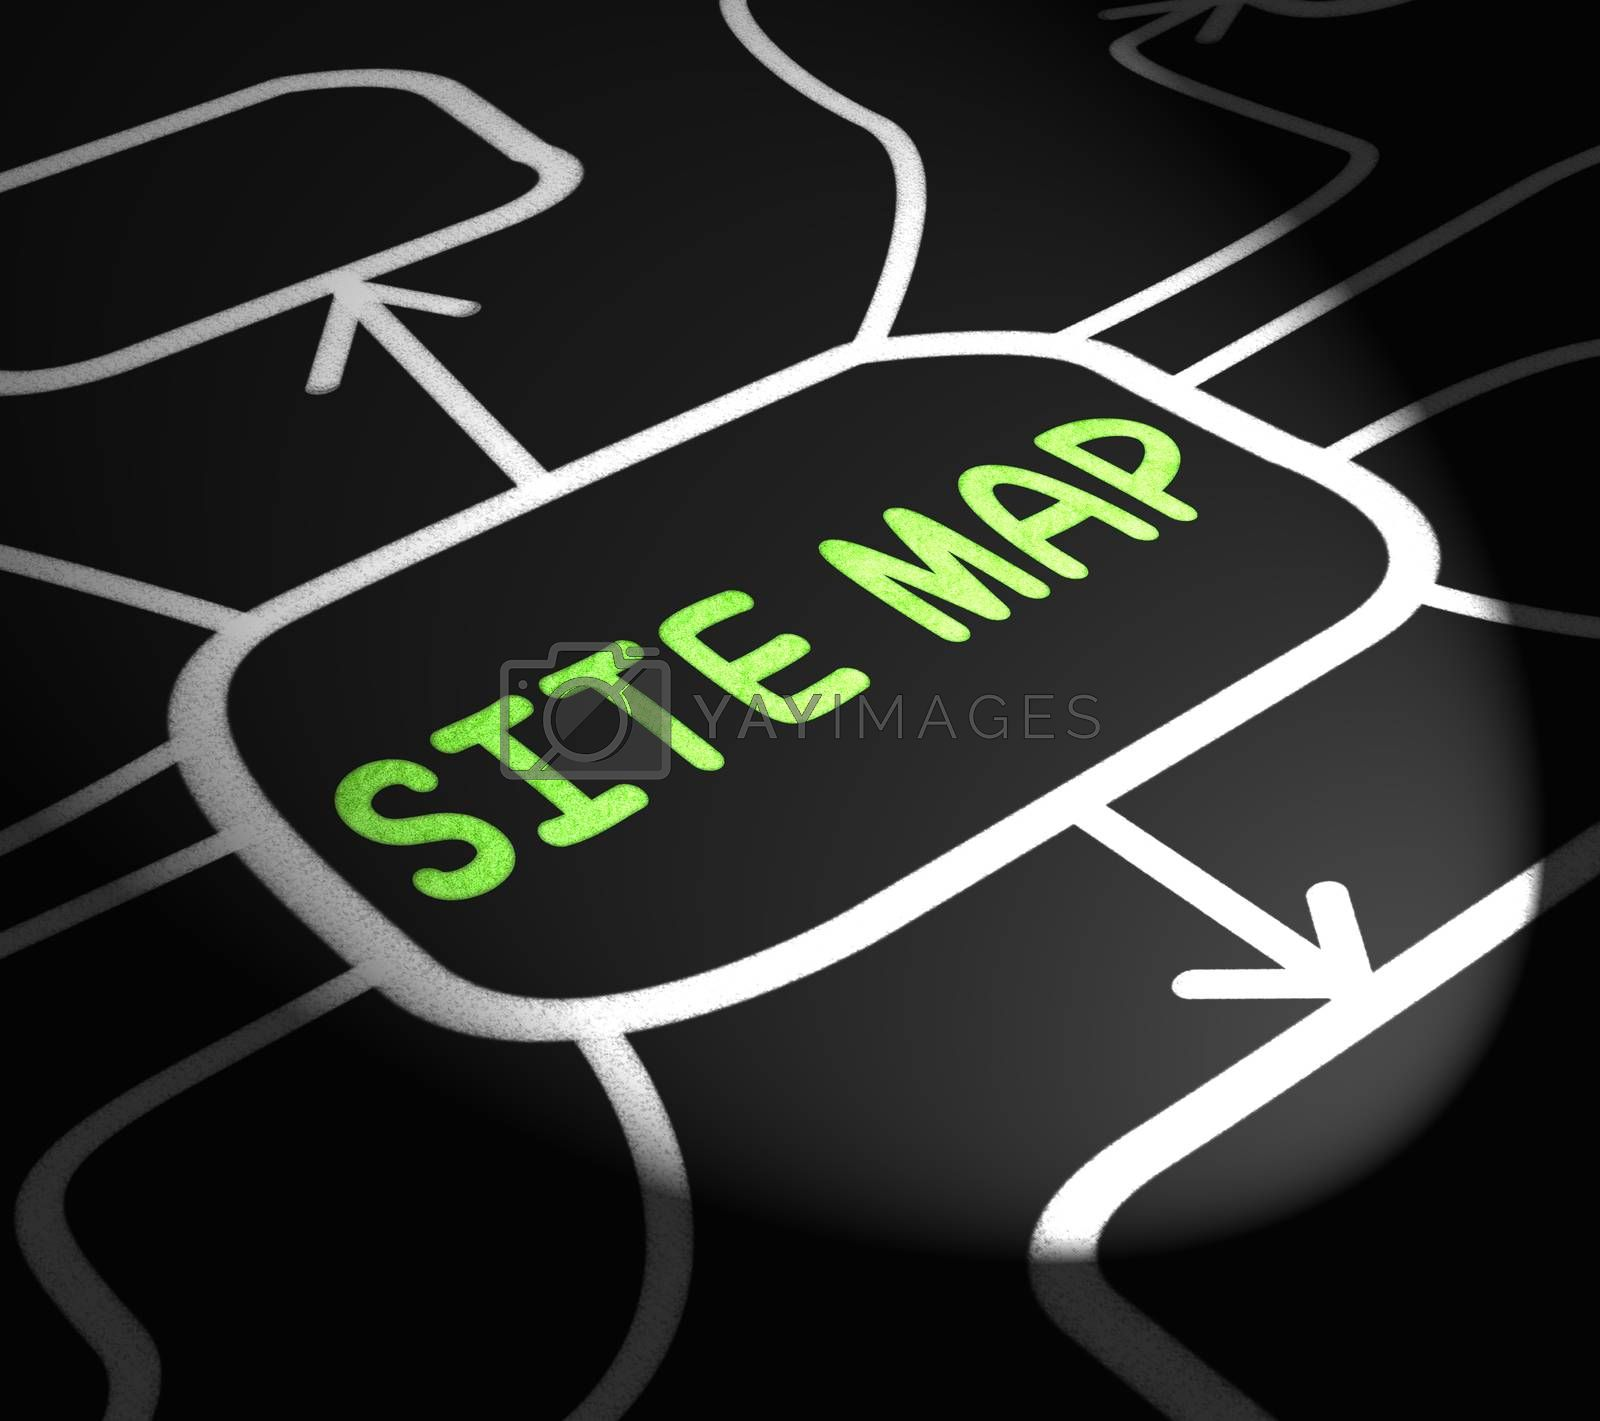 Site Map Arrows Means Navigating Around Website by stuartmiles